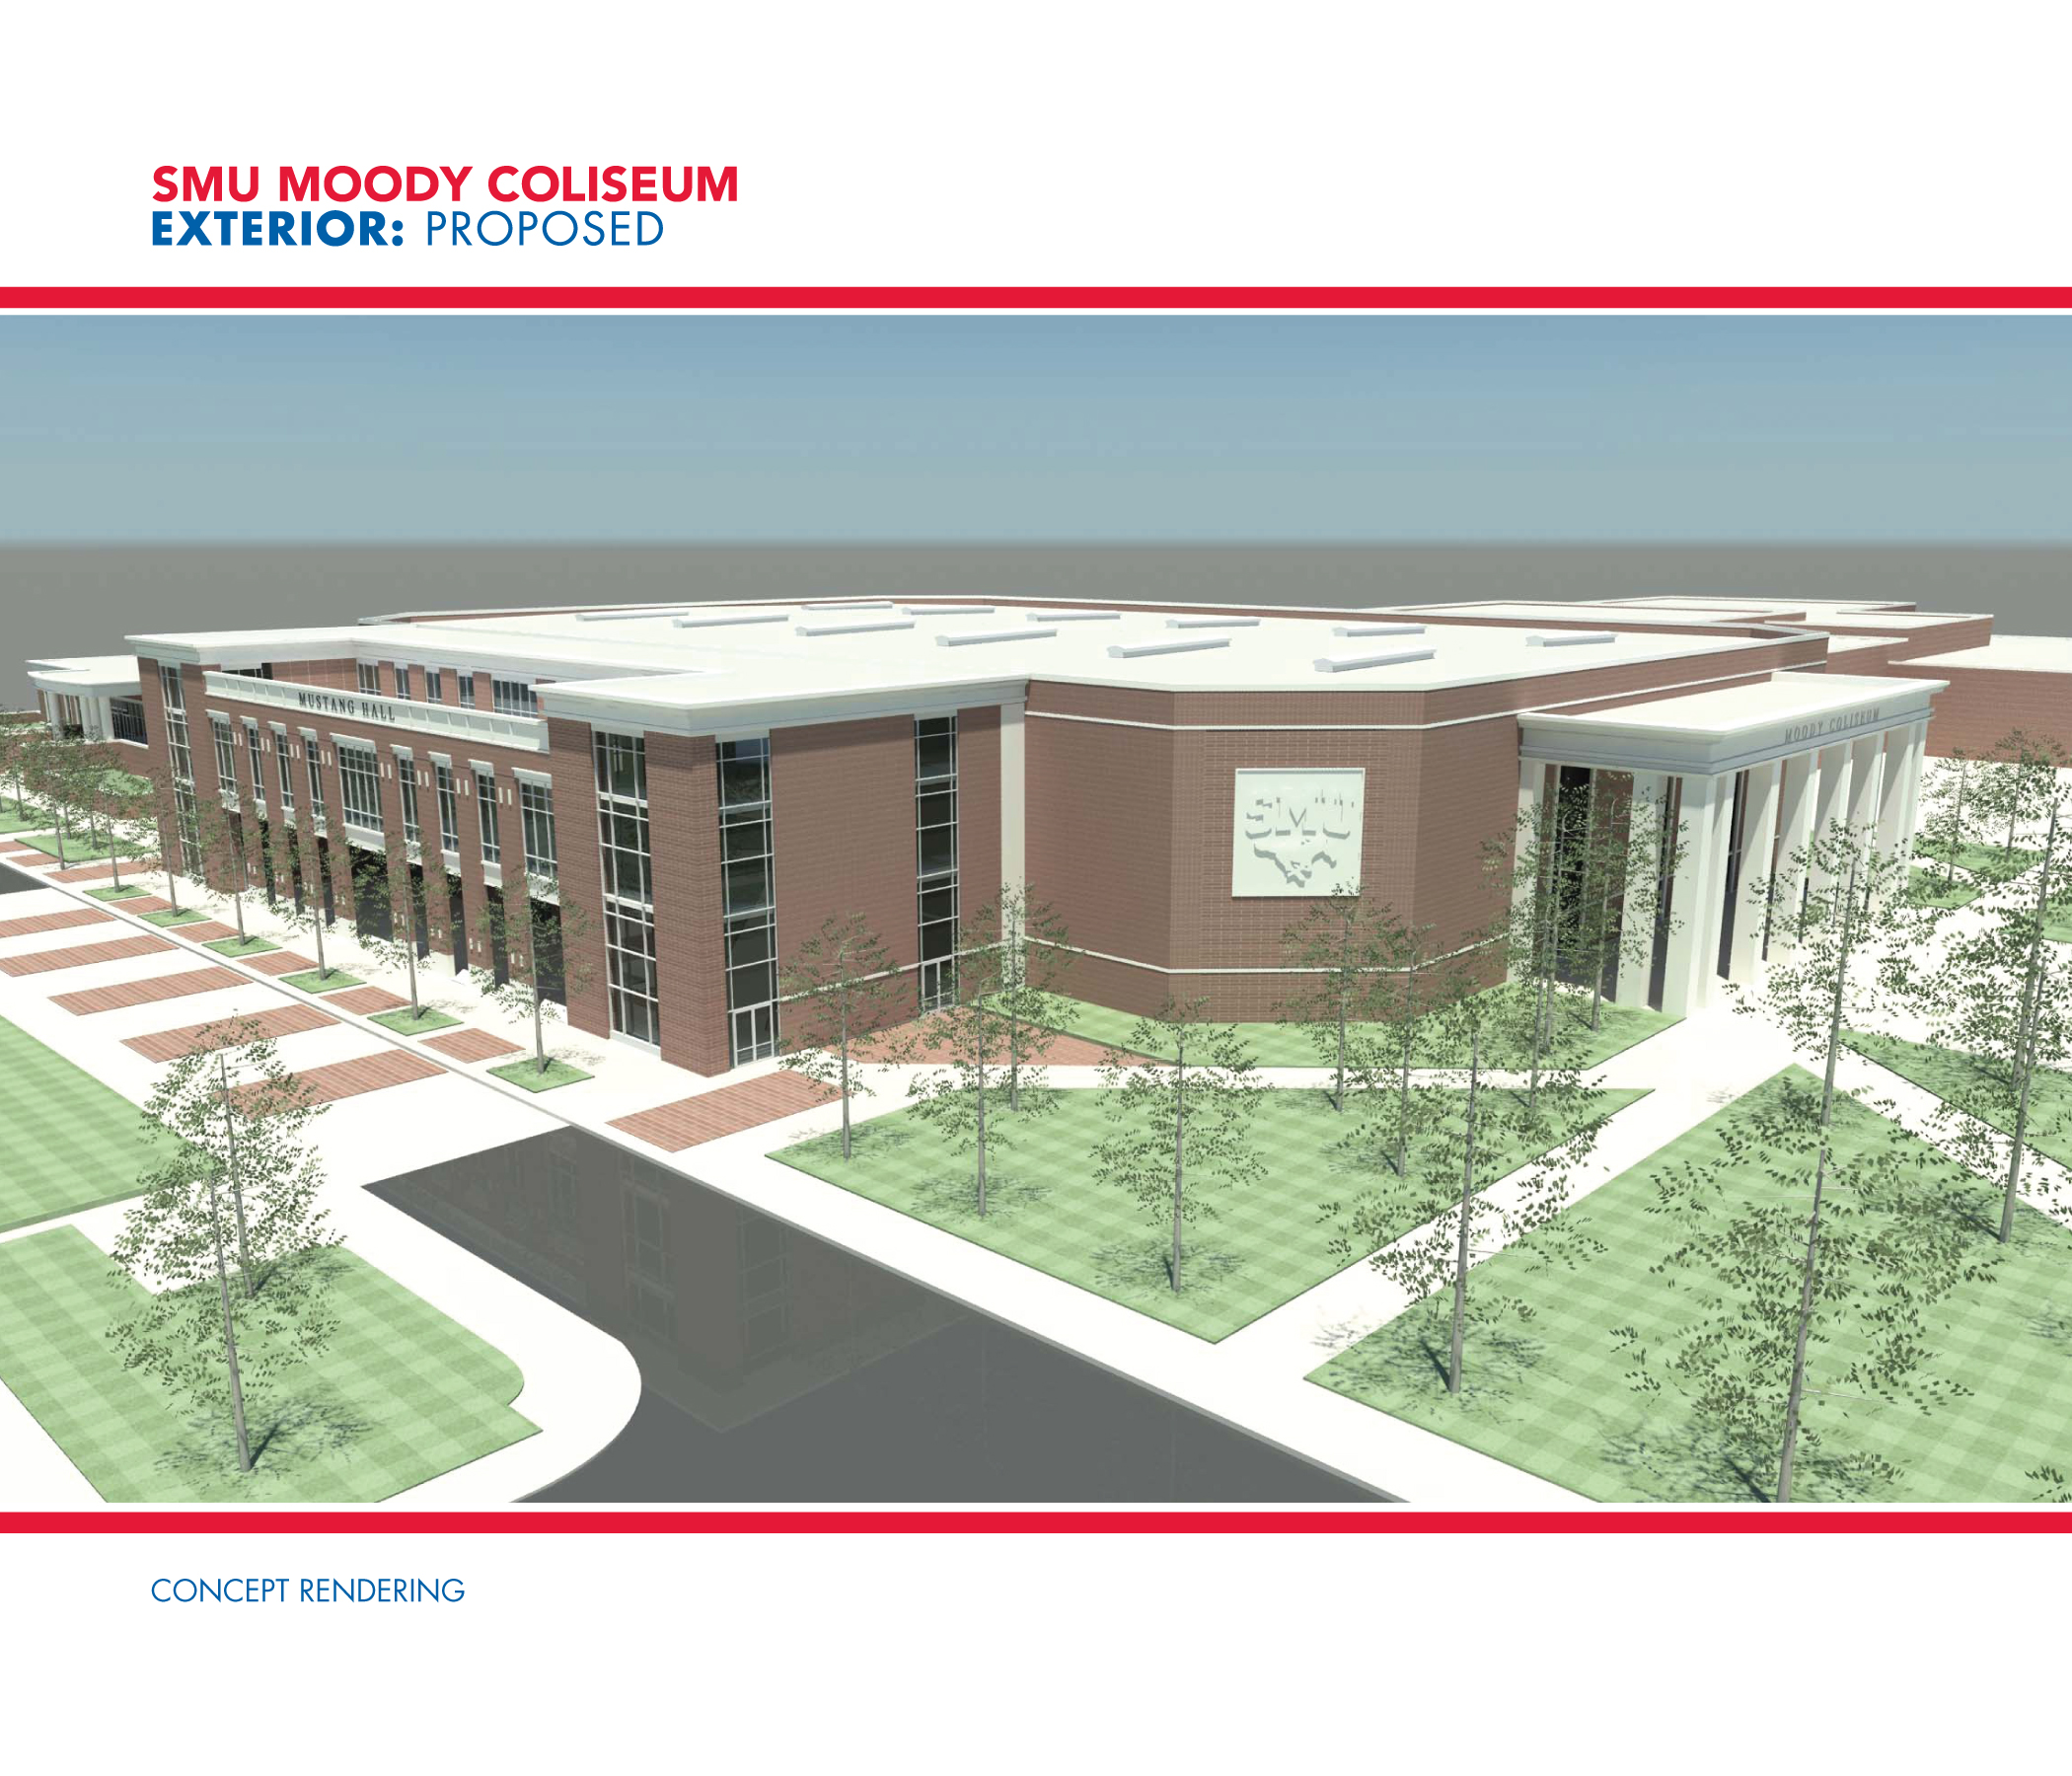 Rendering of the Exterior for SMU's Moody Coliseum